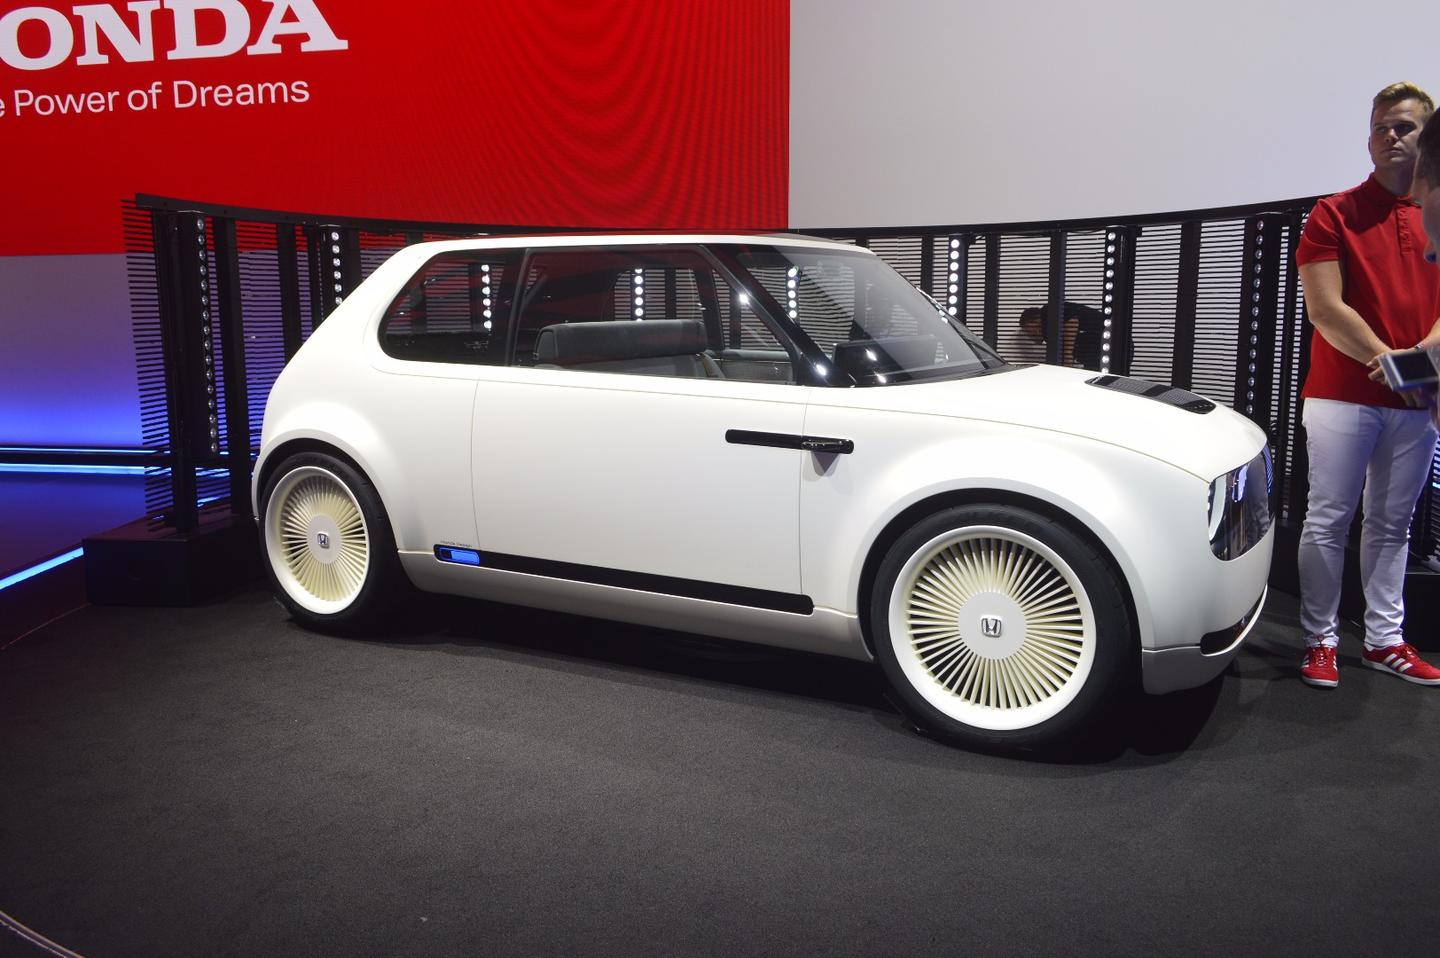 The Honda Urban EV Concept launched in Frankfurt